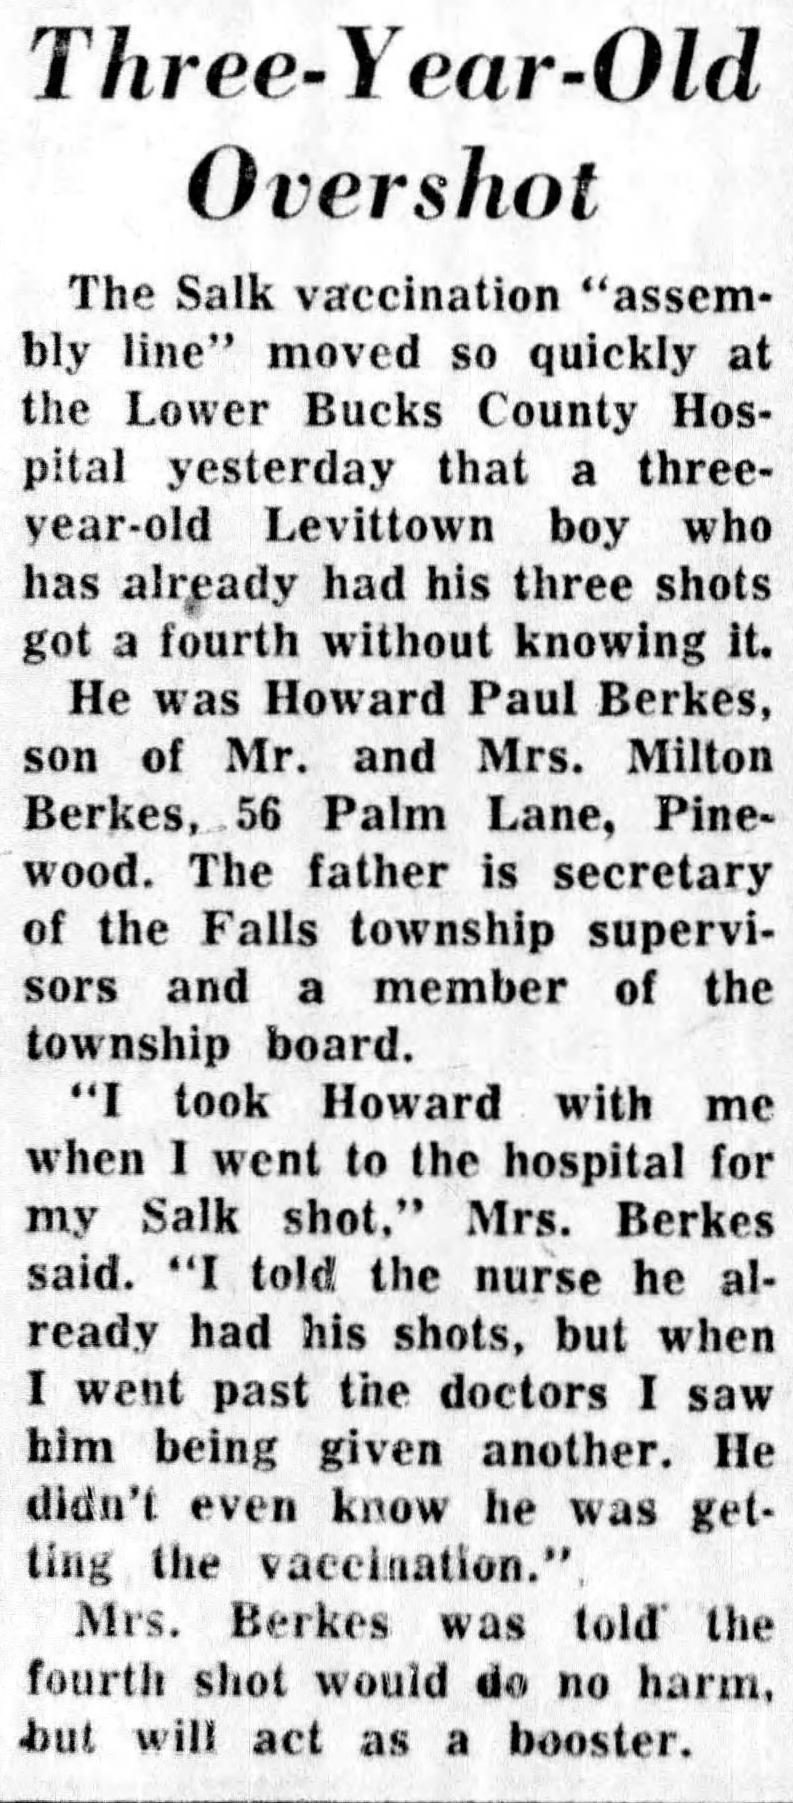 """A newspaper clipping from the 1950s describes Howard Berkes' accidental """"extra"""" vaccination for polio when he was a child."""